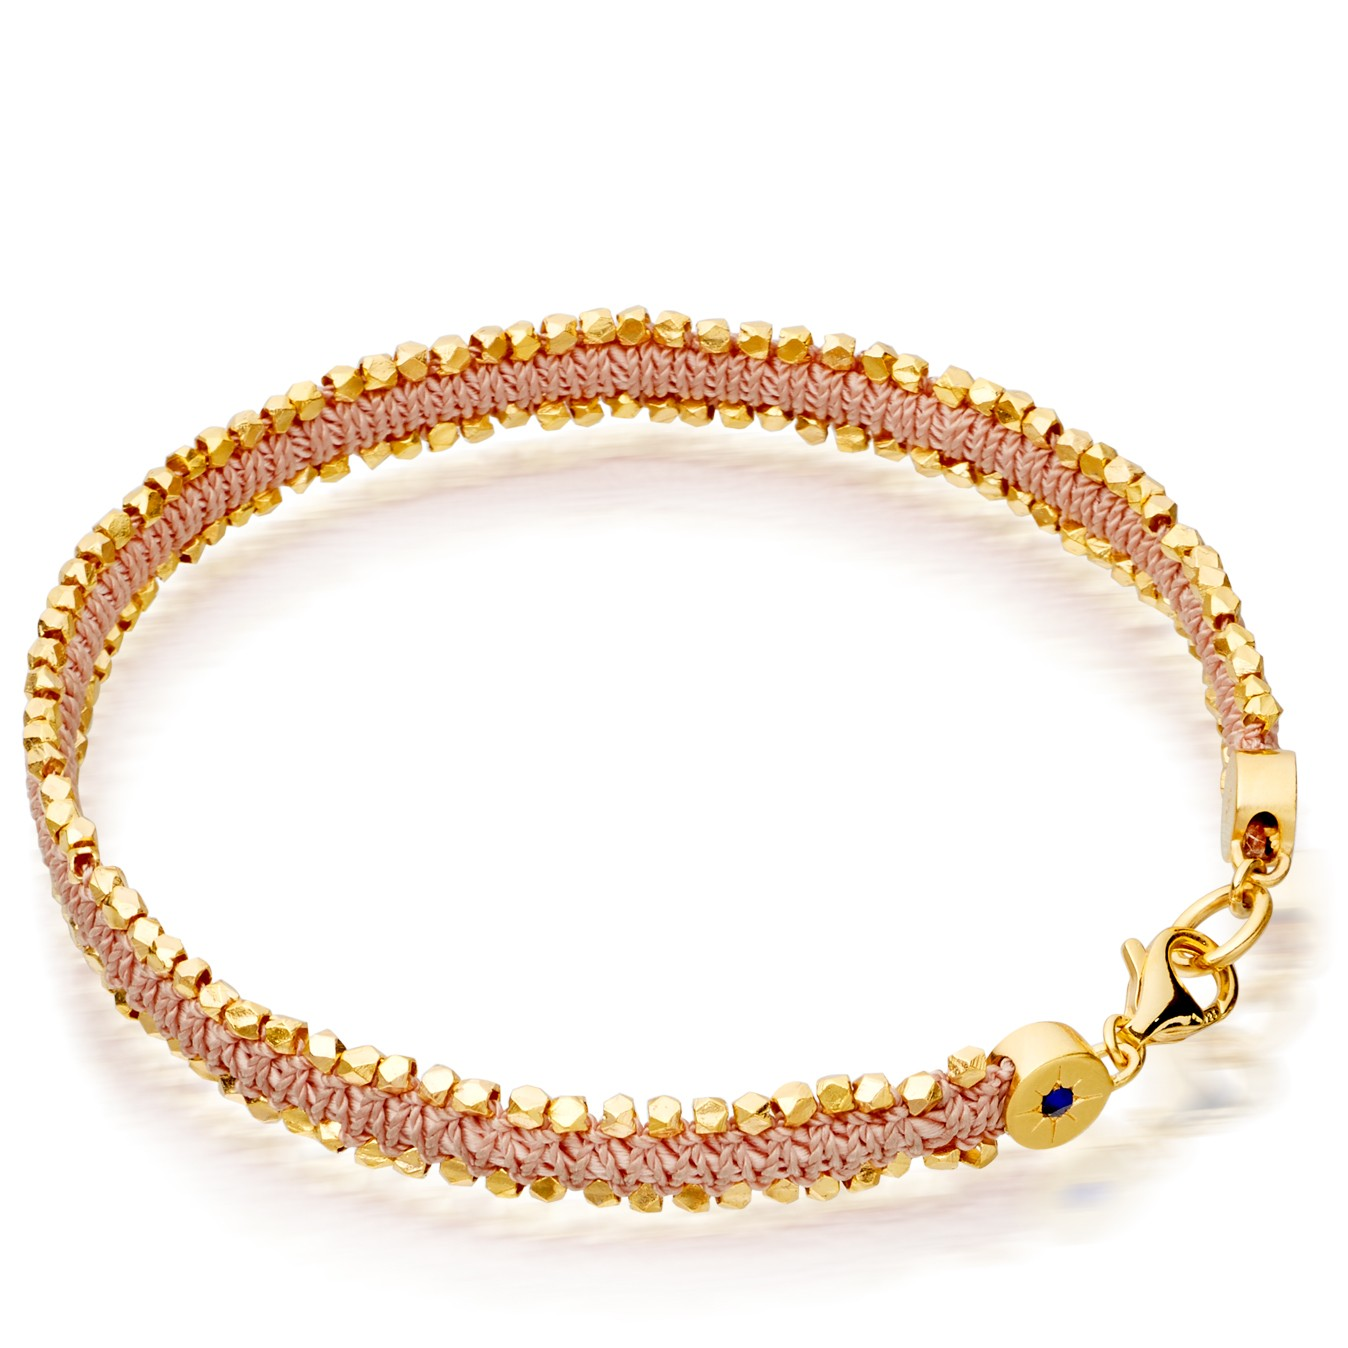 Astley Clarke Peach Blush Nugget Biography Bracelet - British luxury jewellery - UK style blog